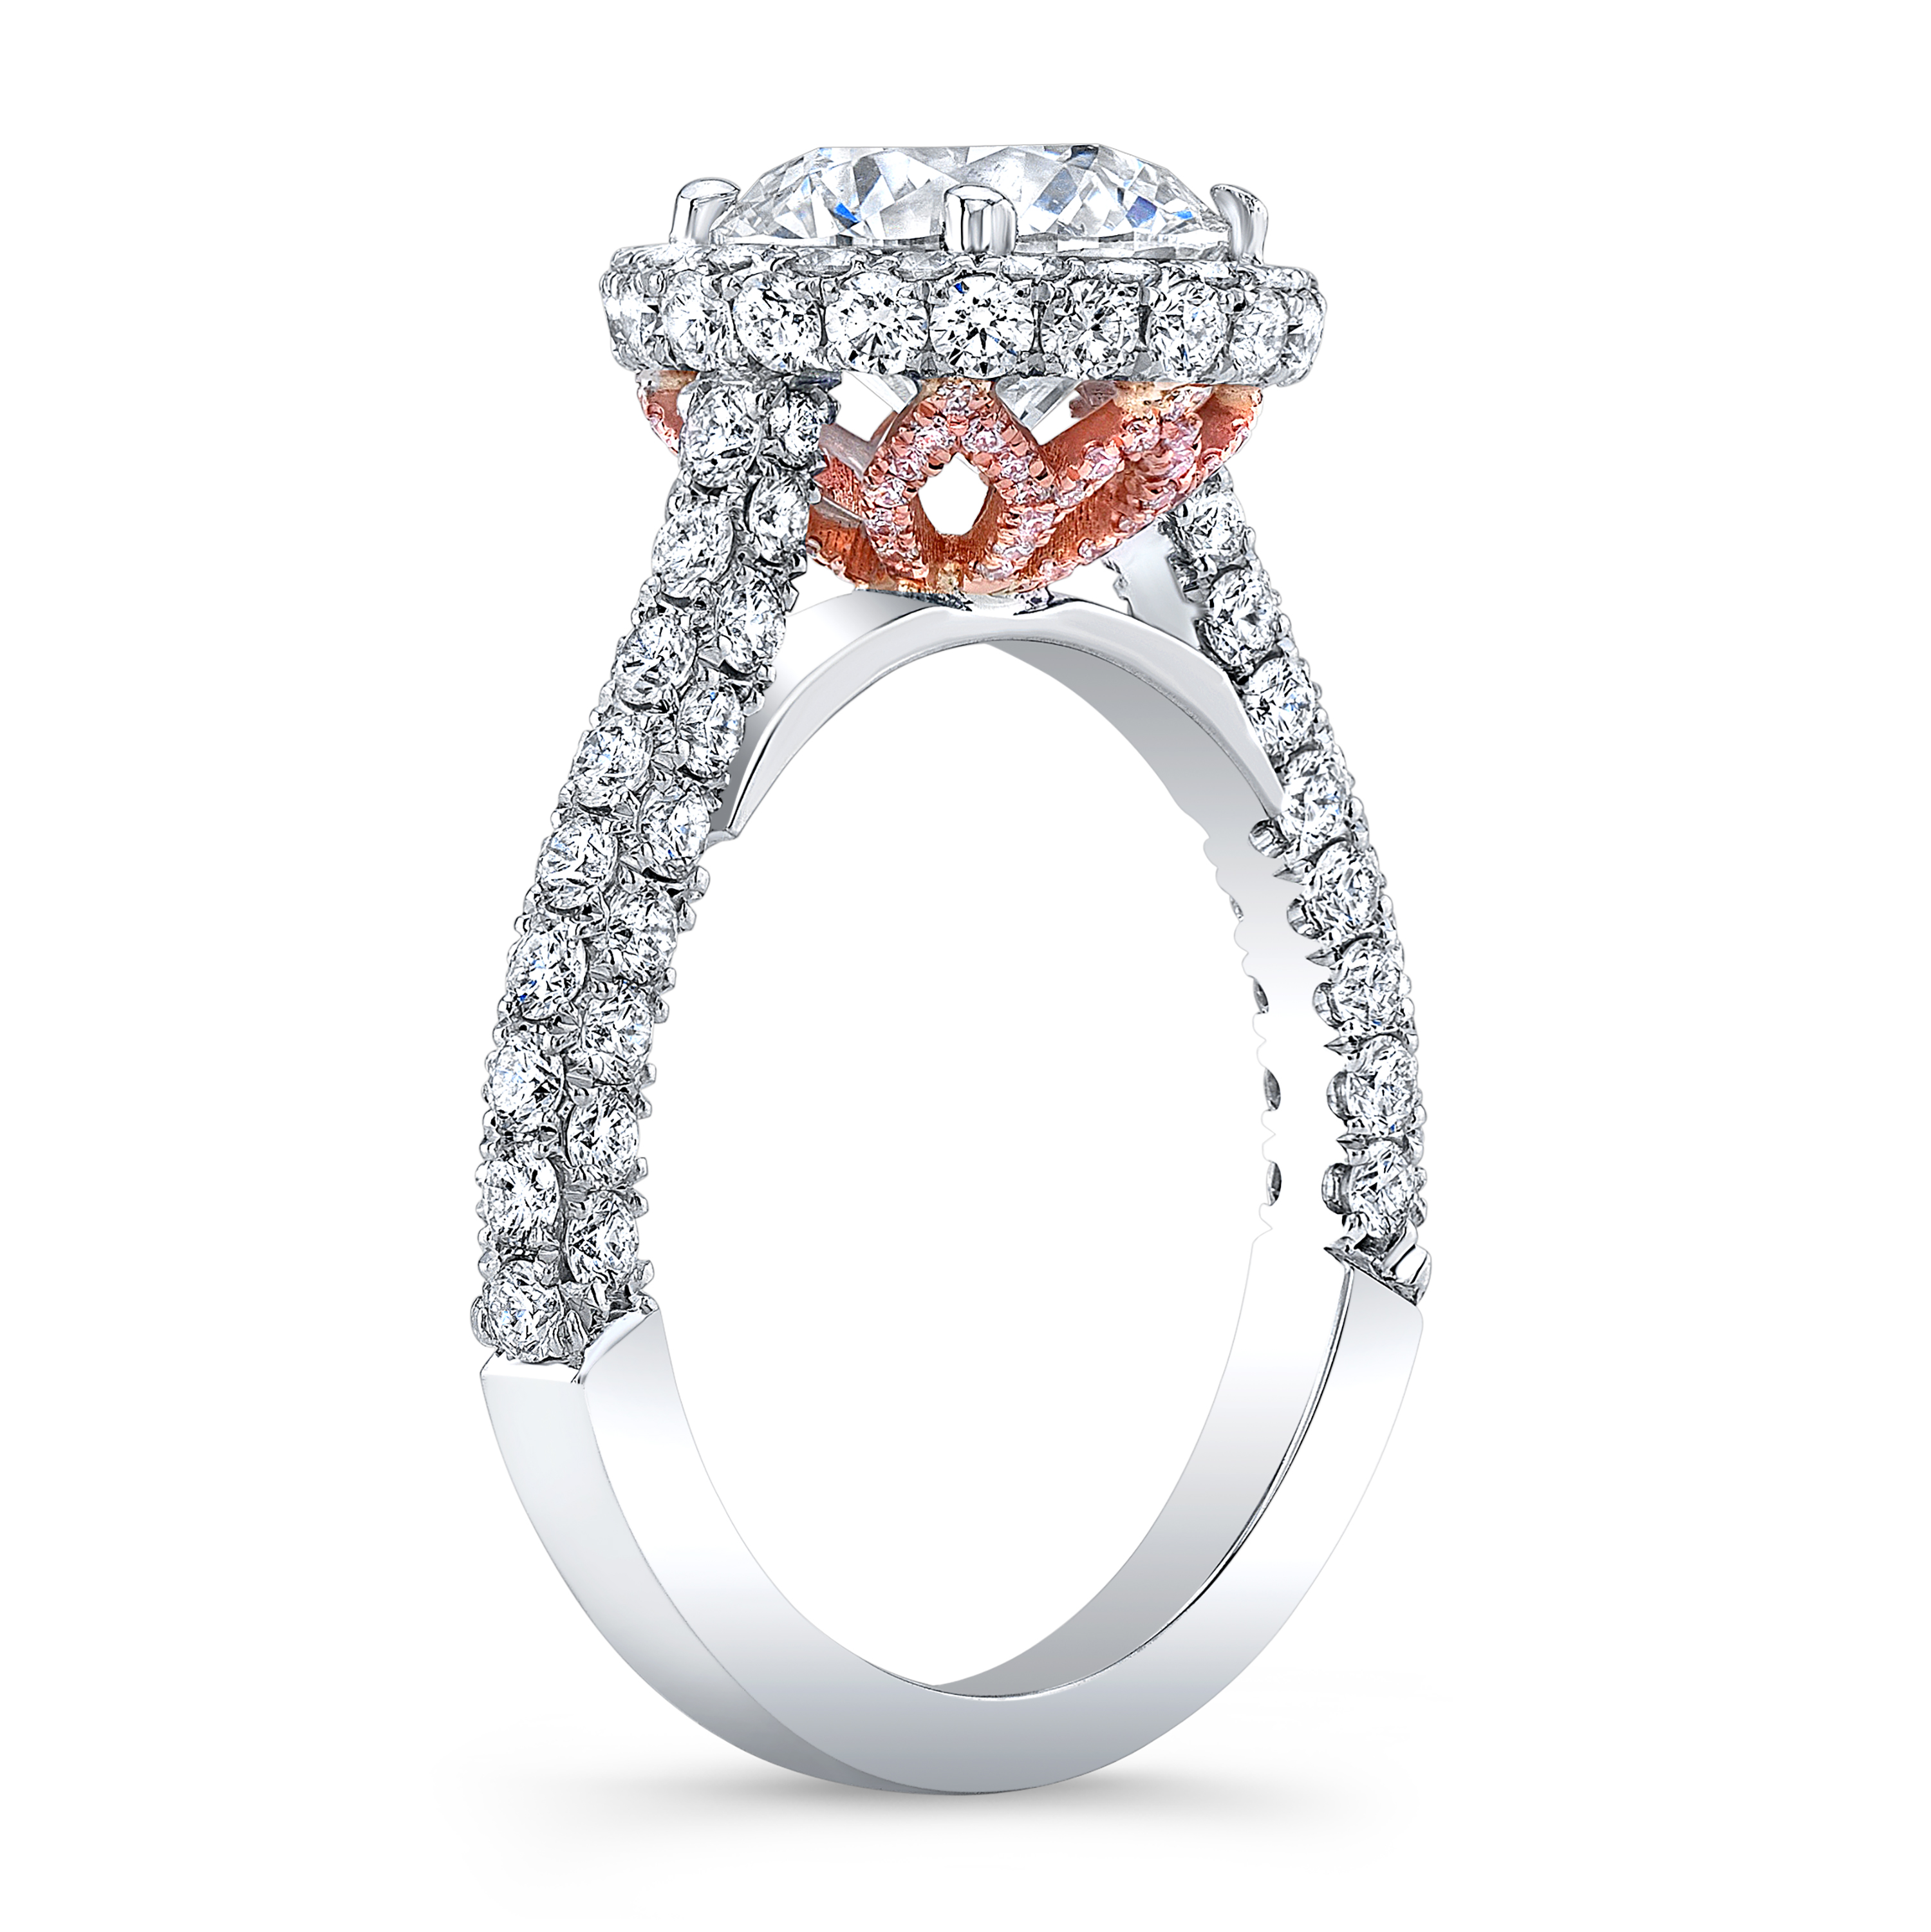 2 8 Ct Round Cut Natural Diamond Halo 3 Sided Pave Engagement Ring With Pink Diamonds Gia Certified